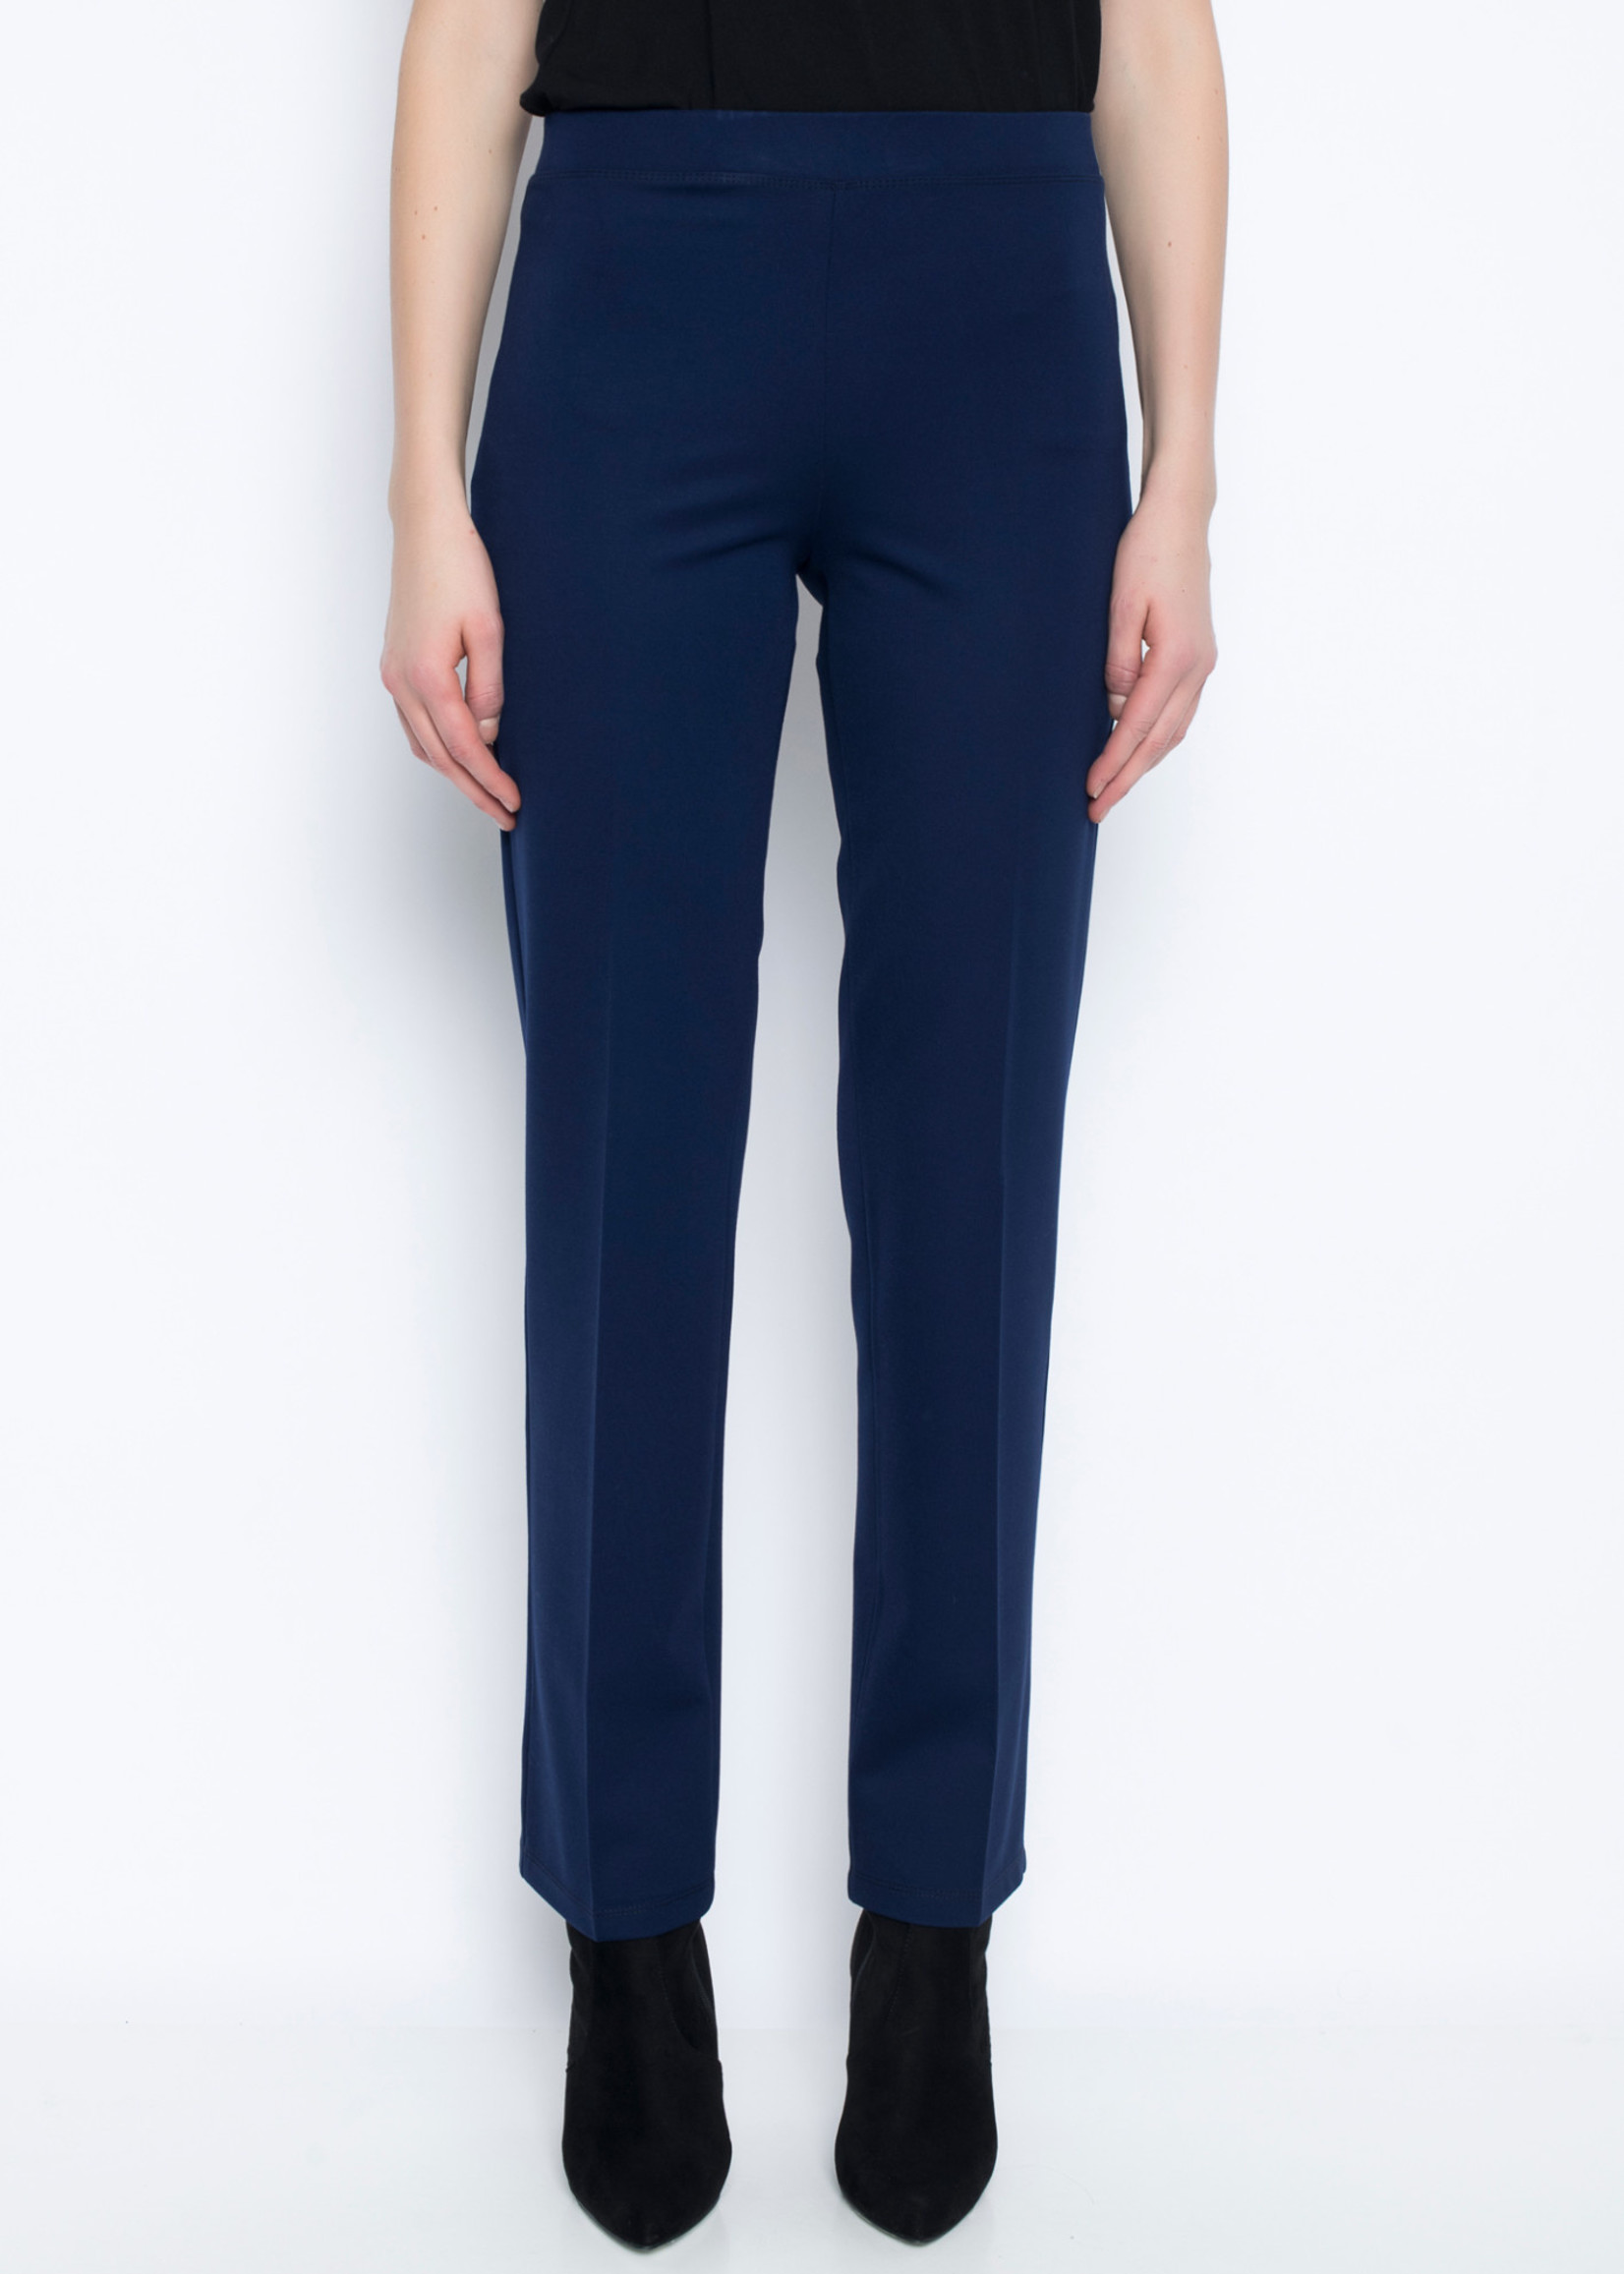 PICADILLY Regular Pull On Pant RC976